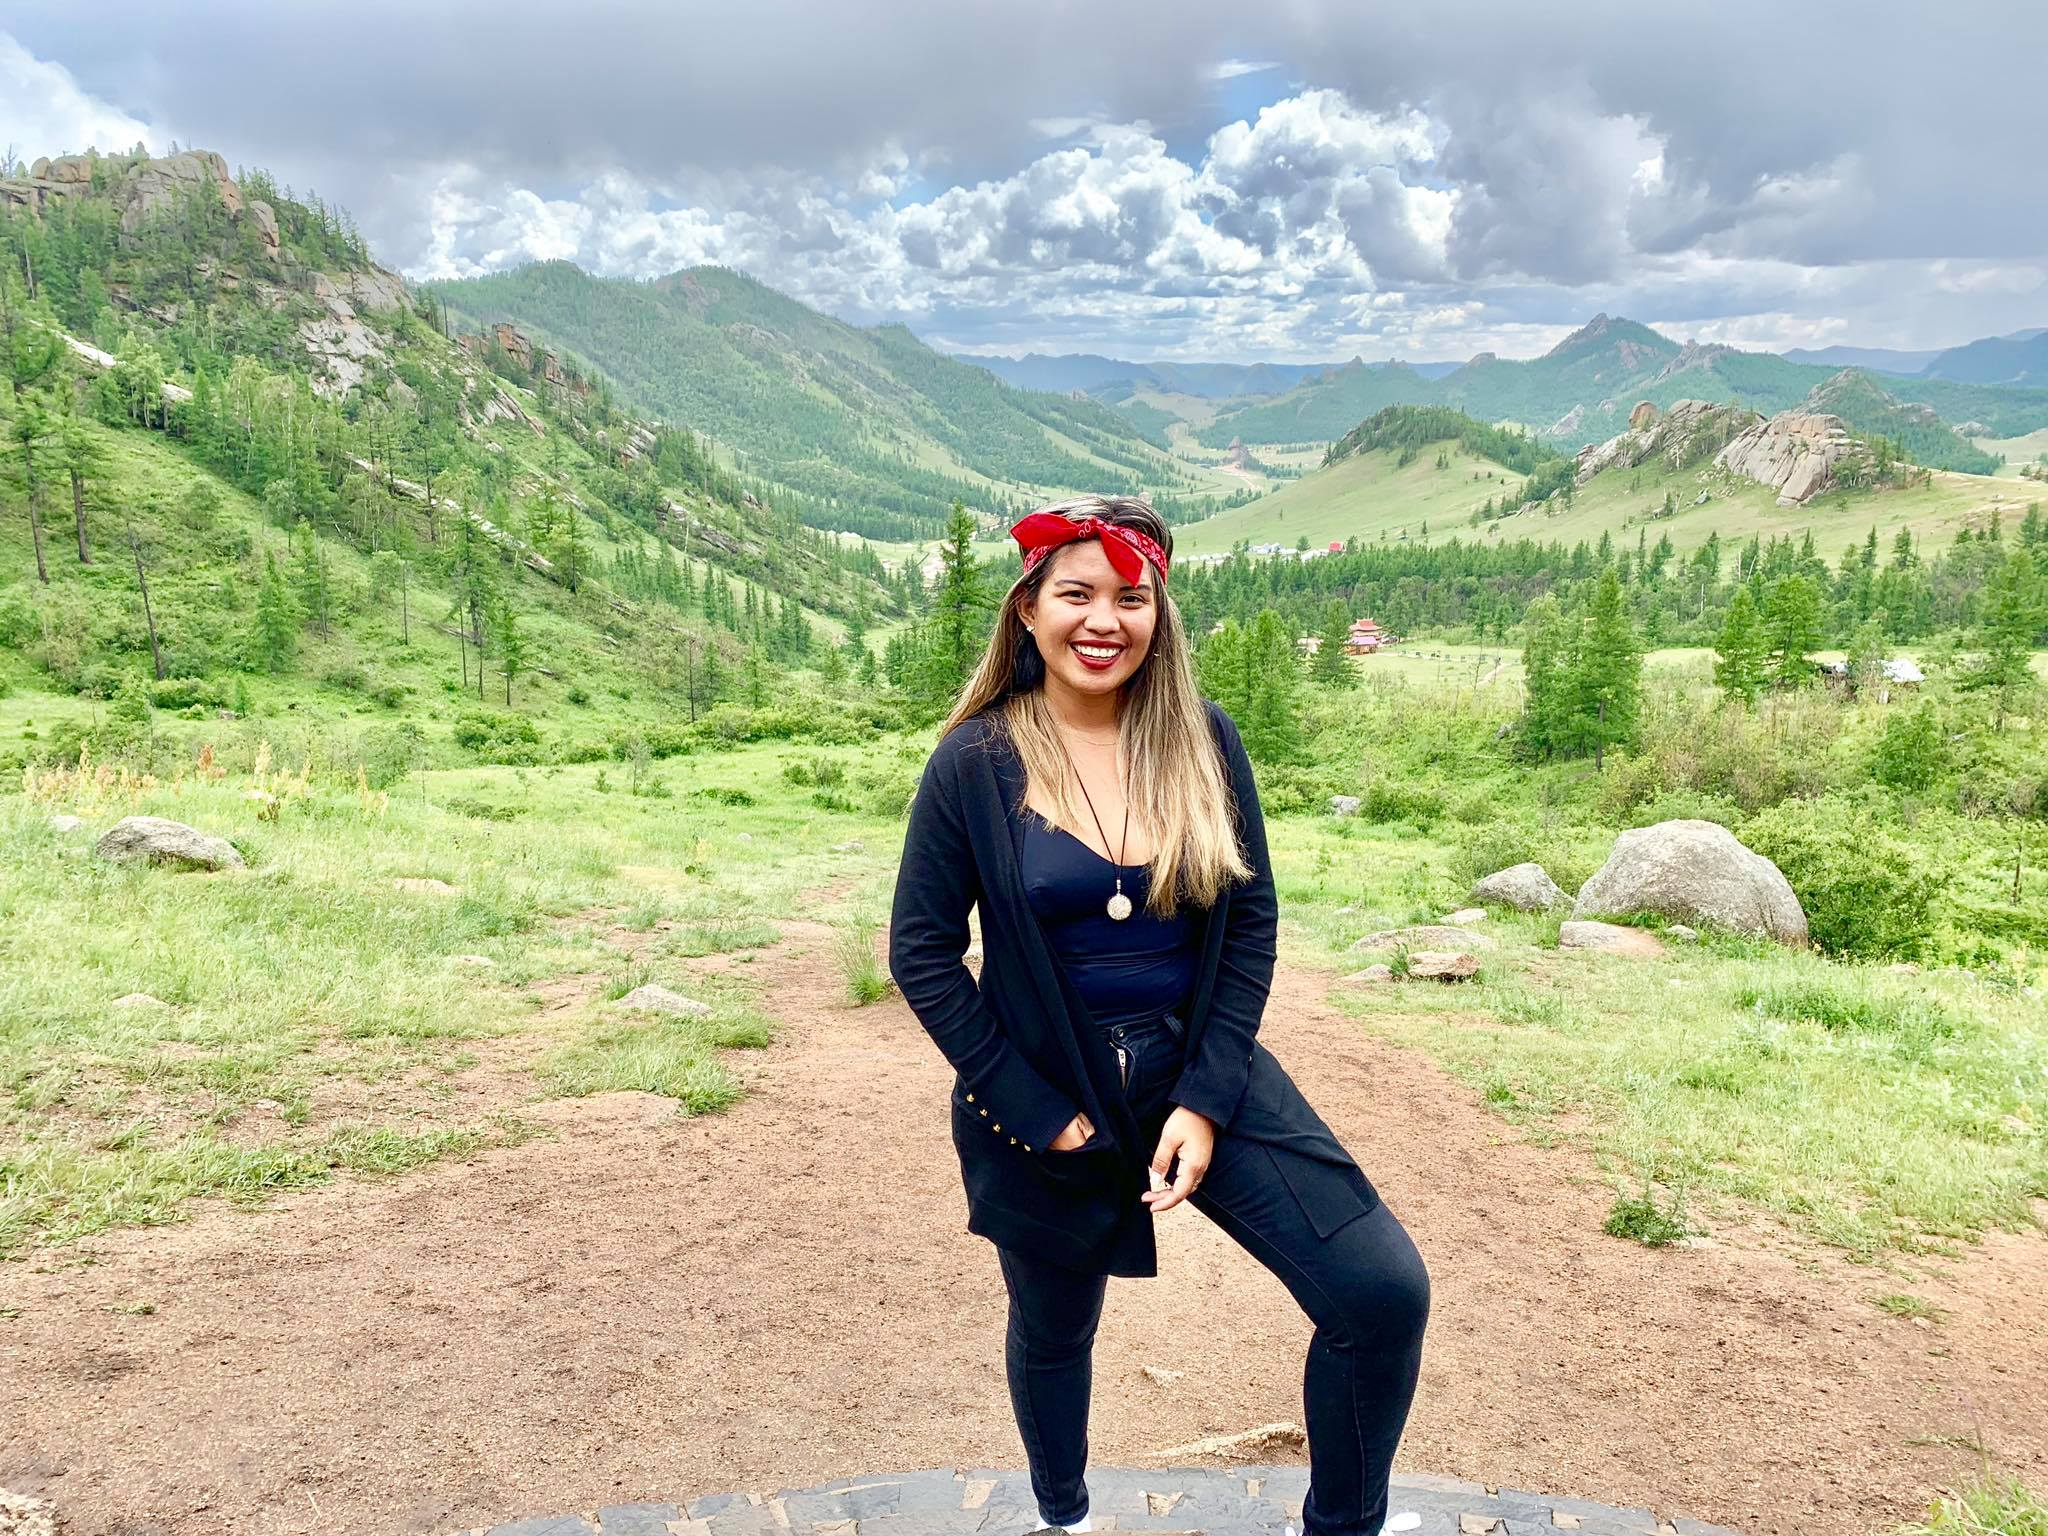 Kach Solo Travels in 2019 Hello from MONGOLIA - my 130th country14.jpg